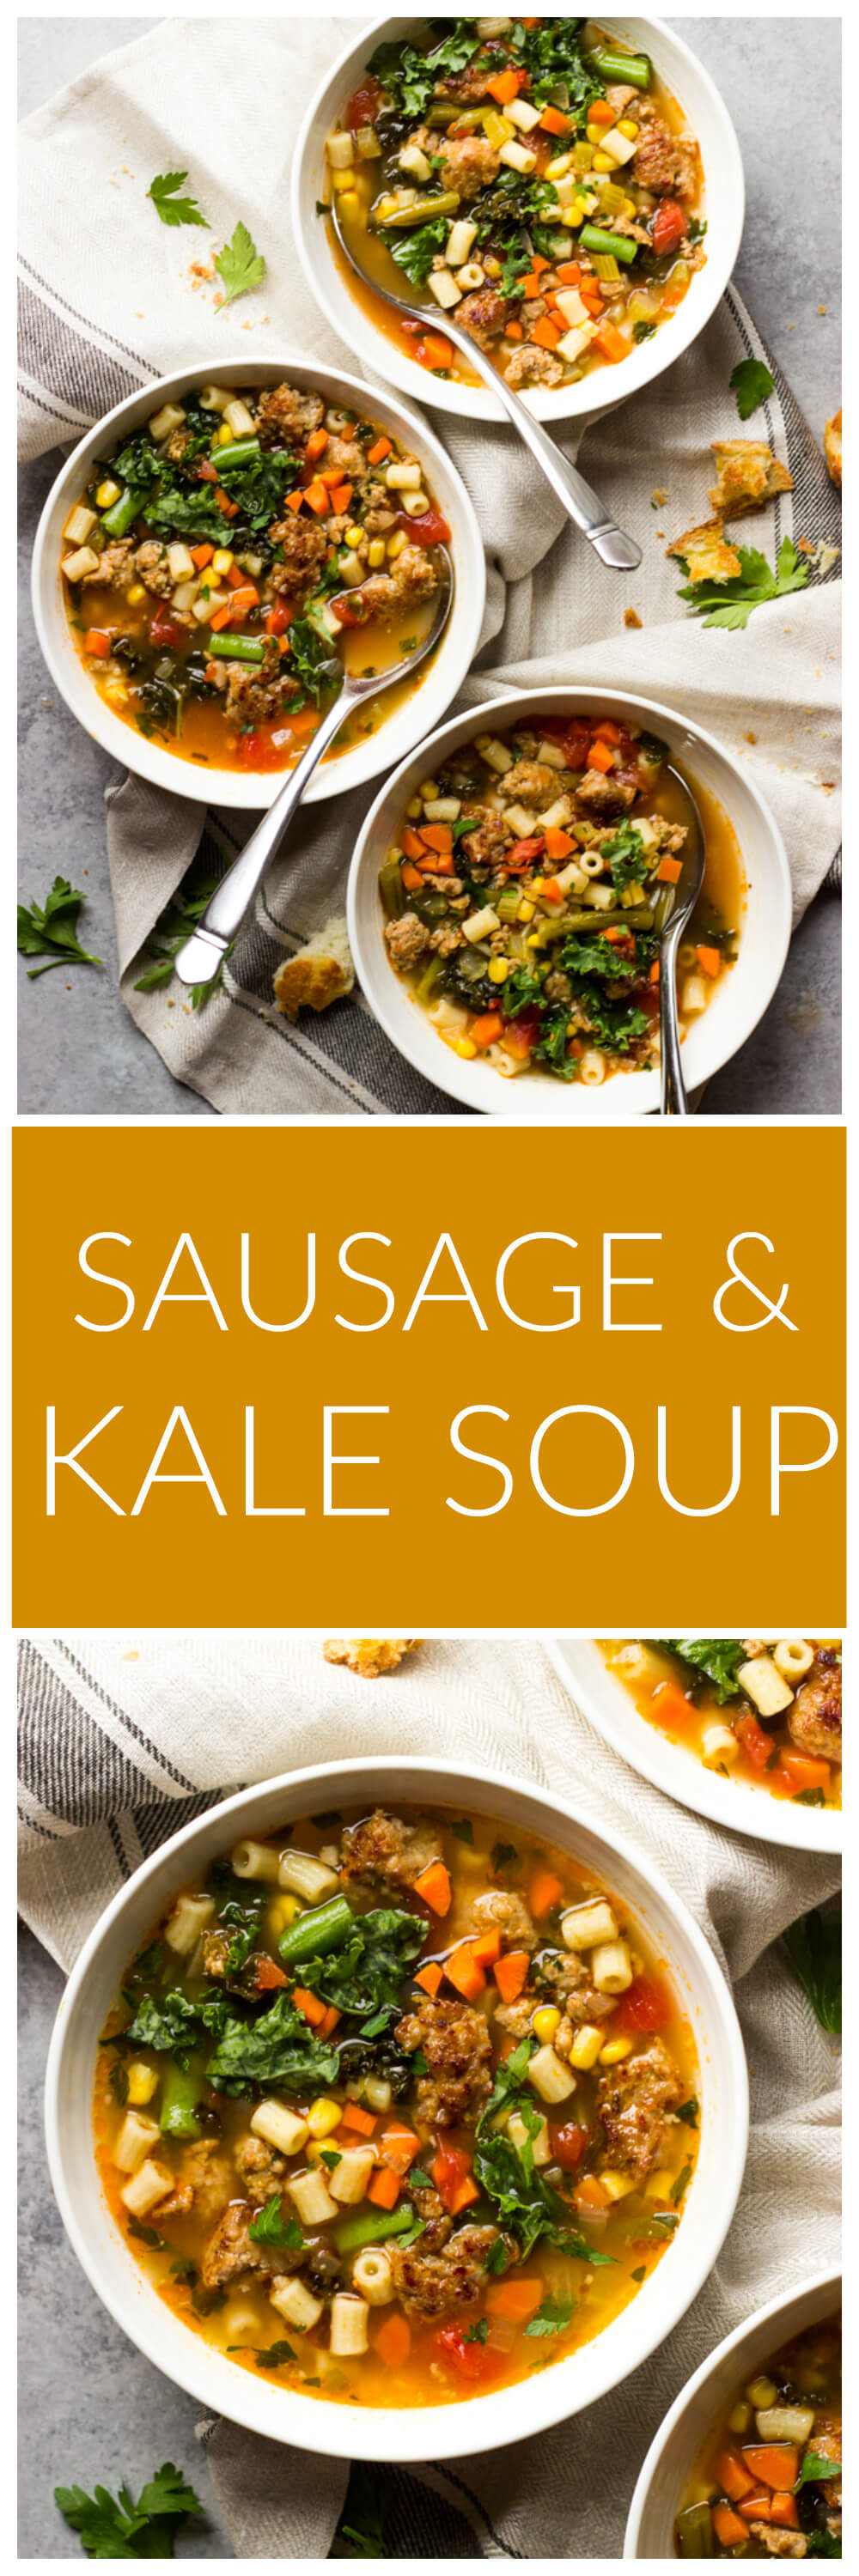 Sausage and Kale Soup - quick and easy soup with ton of veggies and the best seasoning! | littlebroken.com @littlebroken